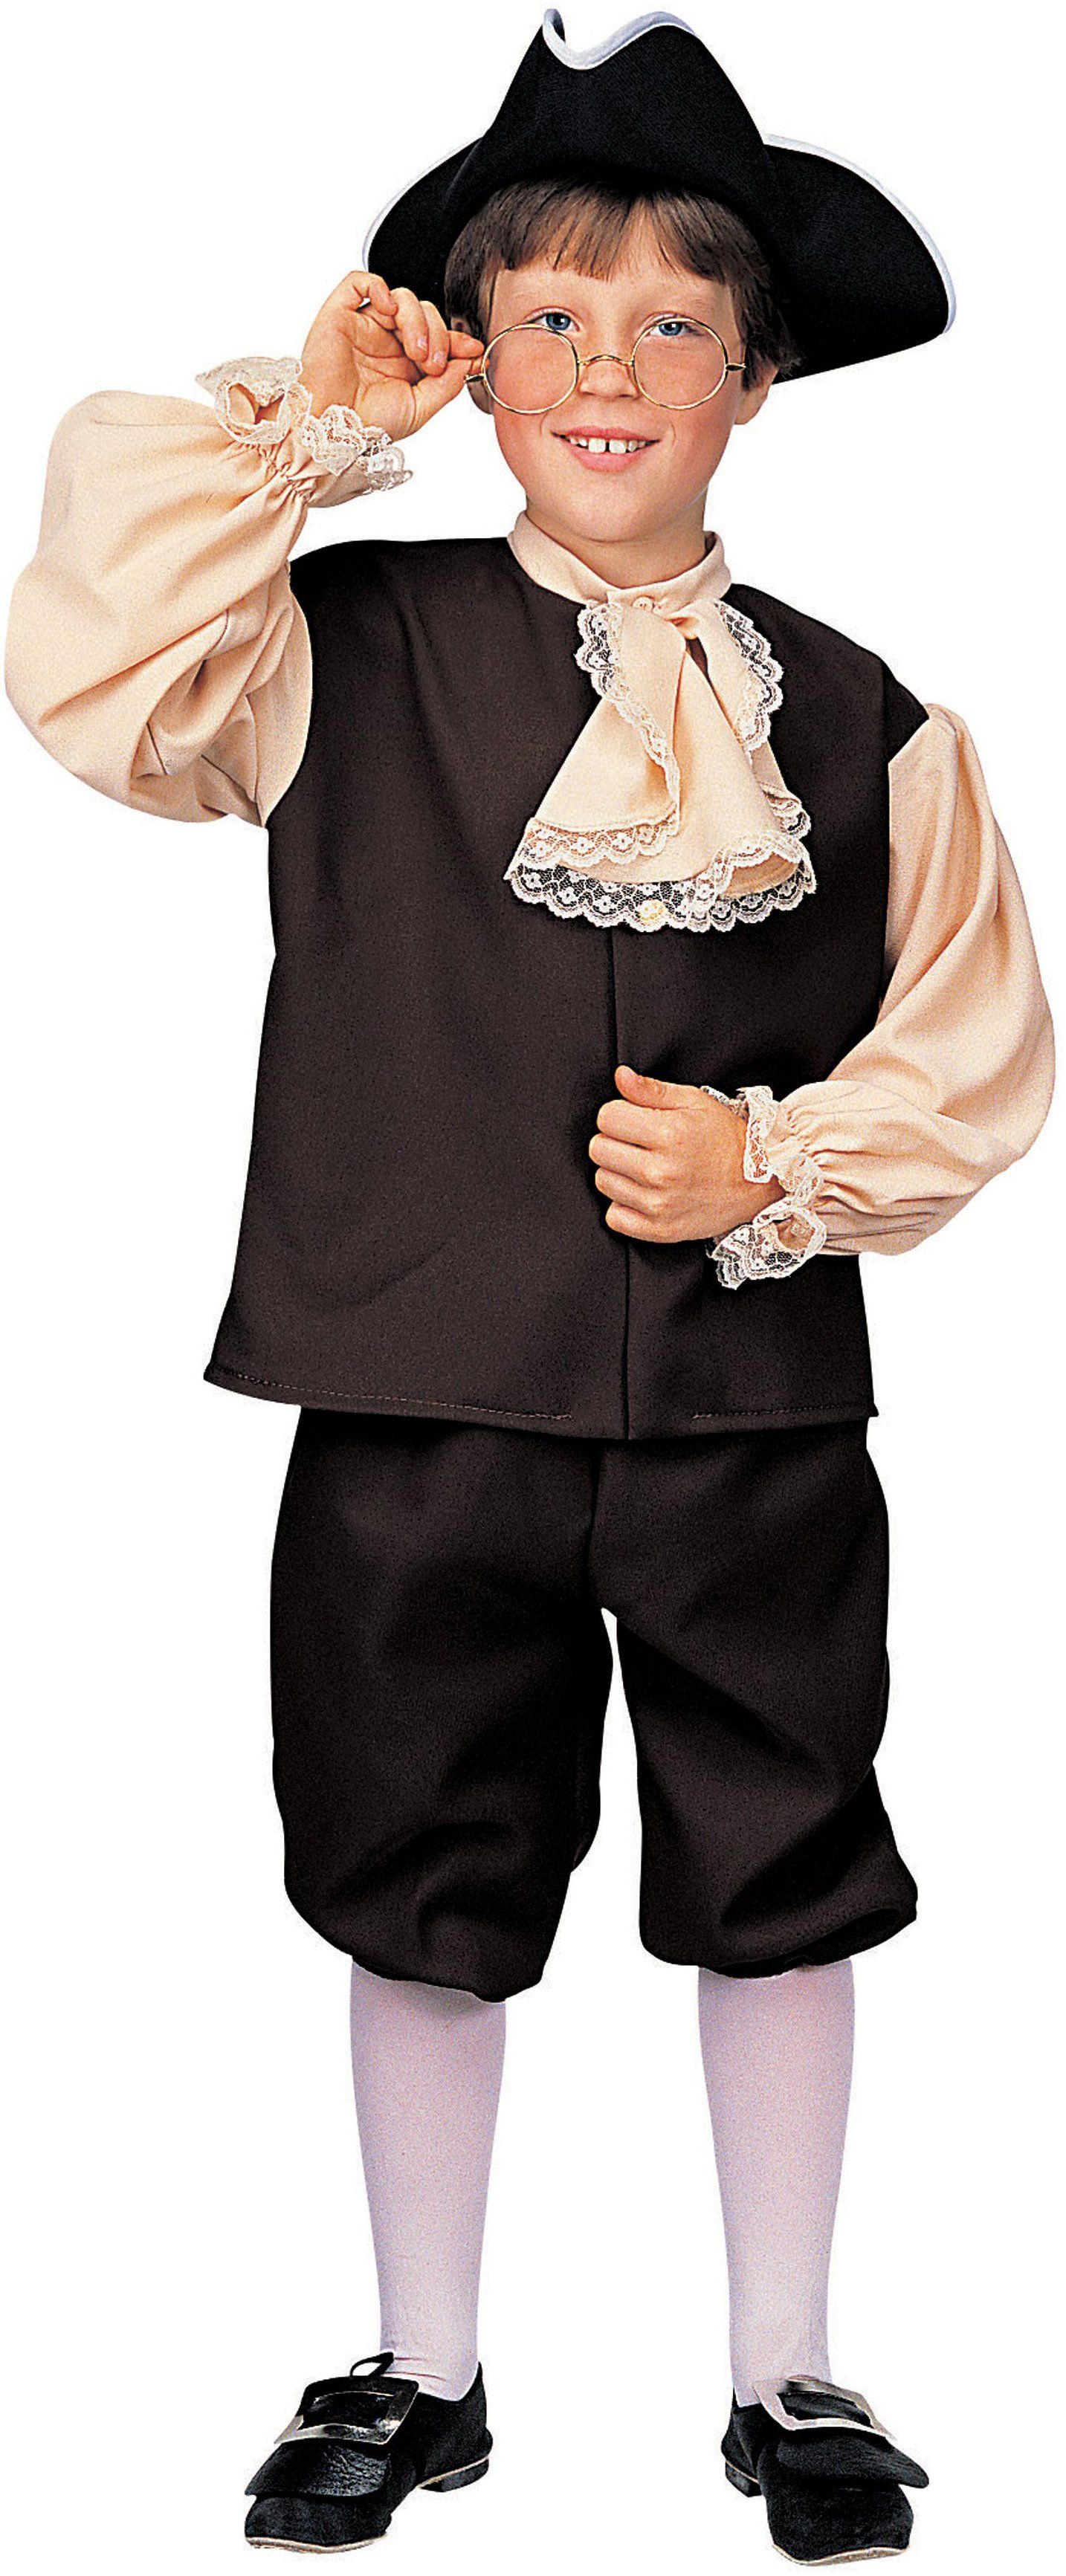 Colonial style dress costumes